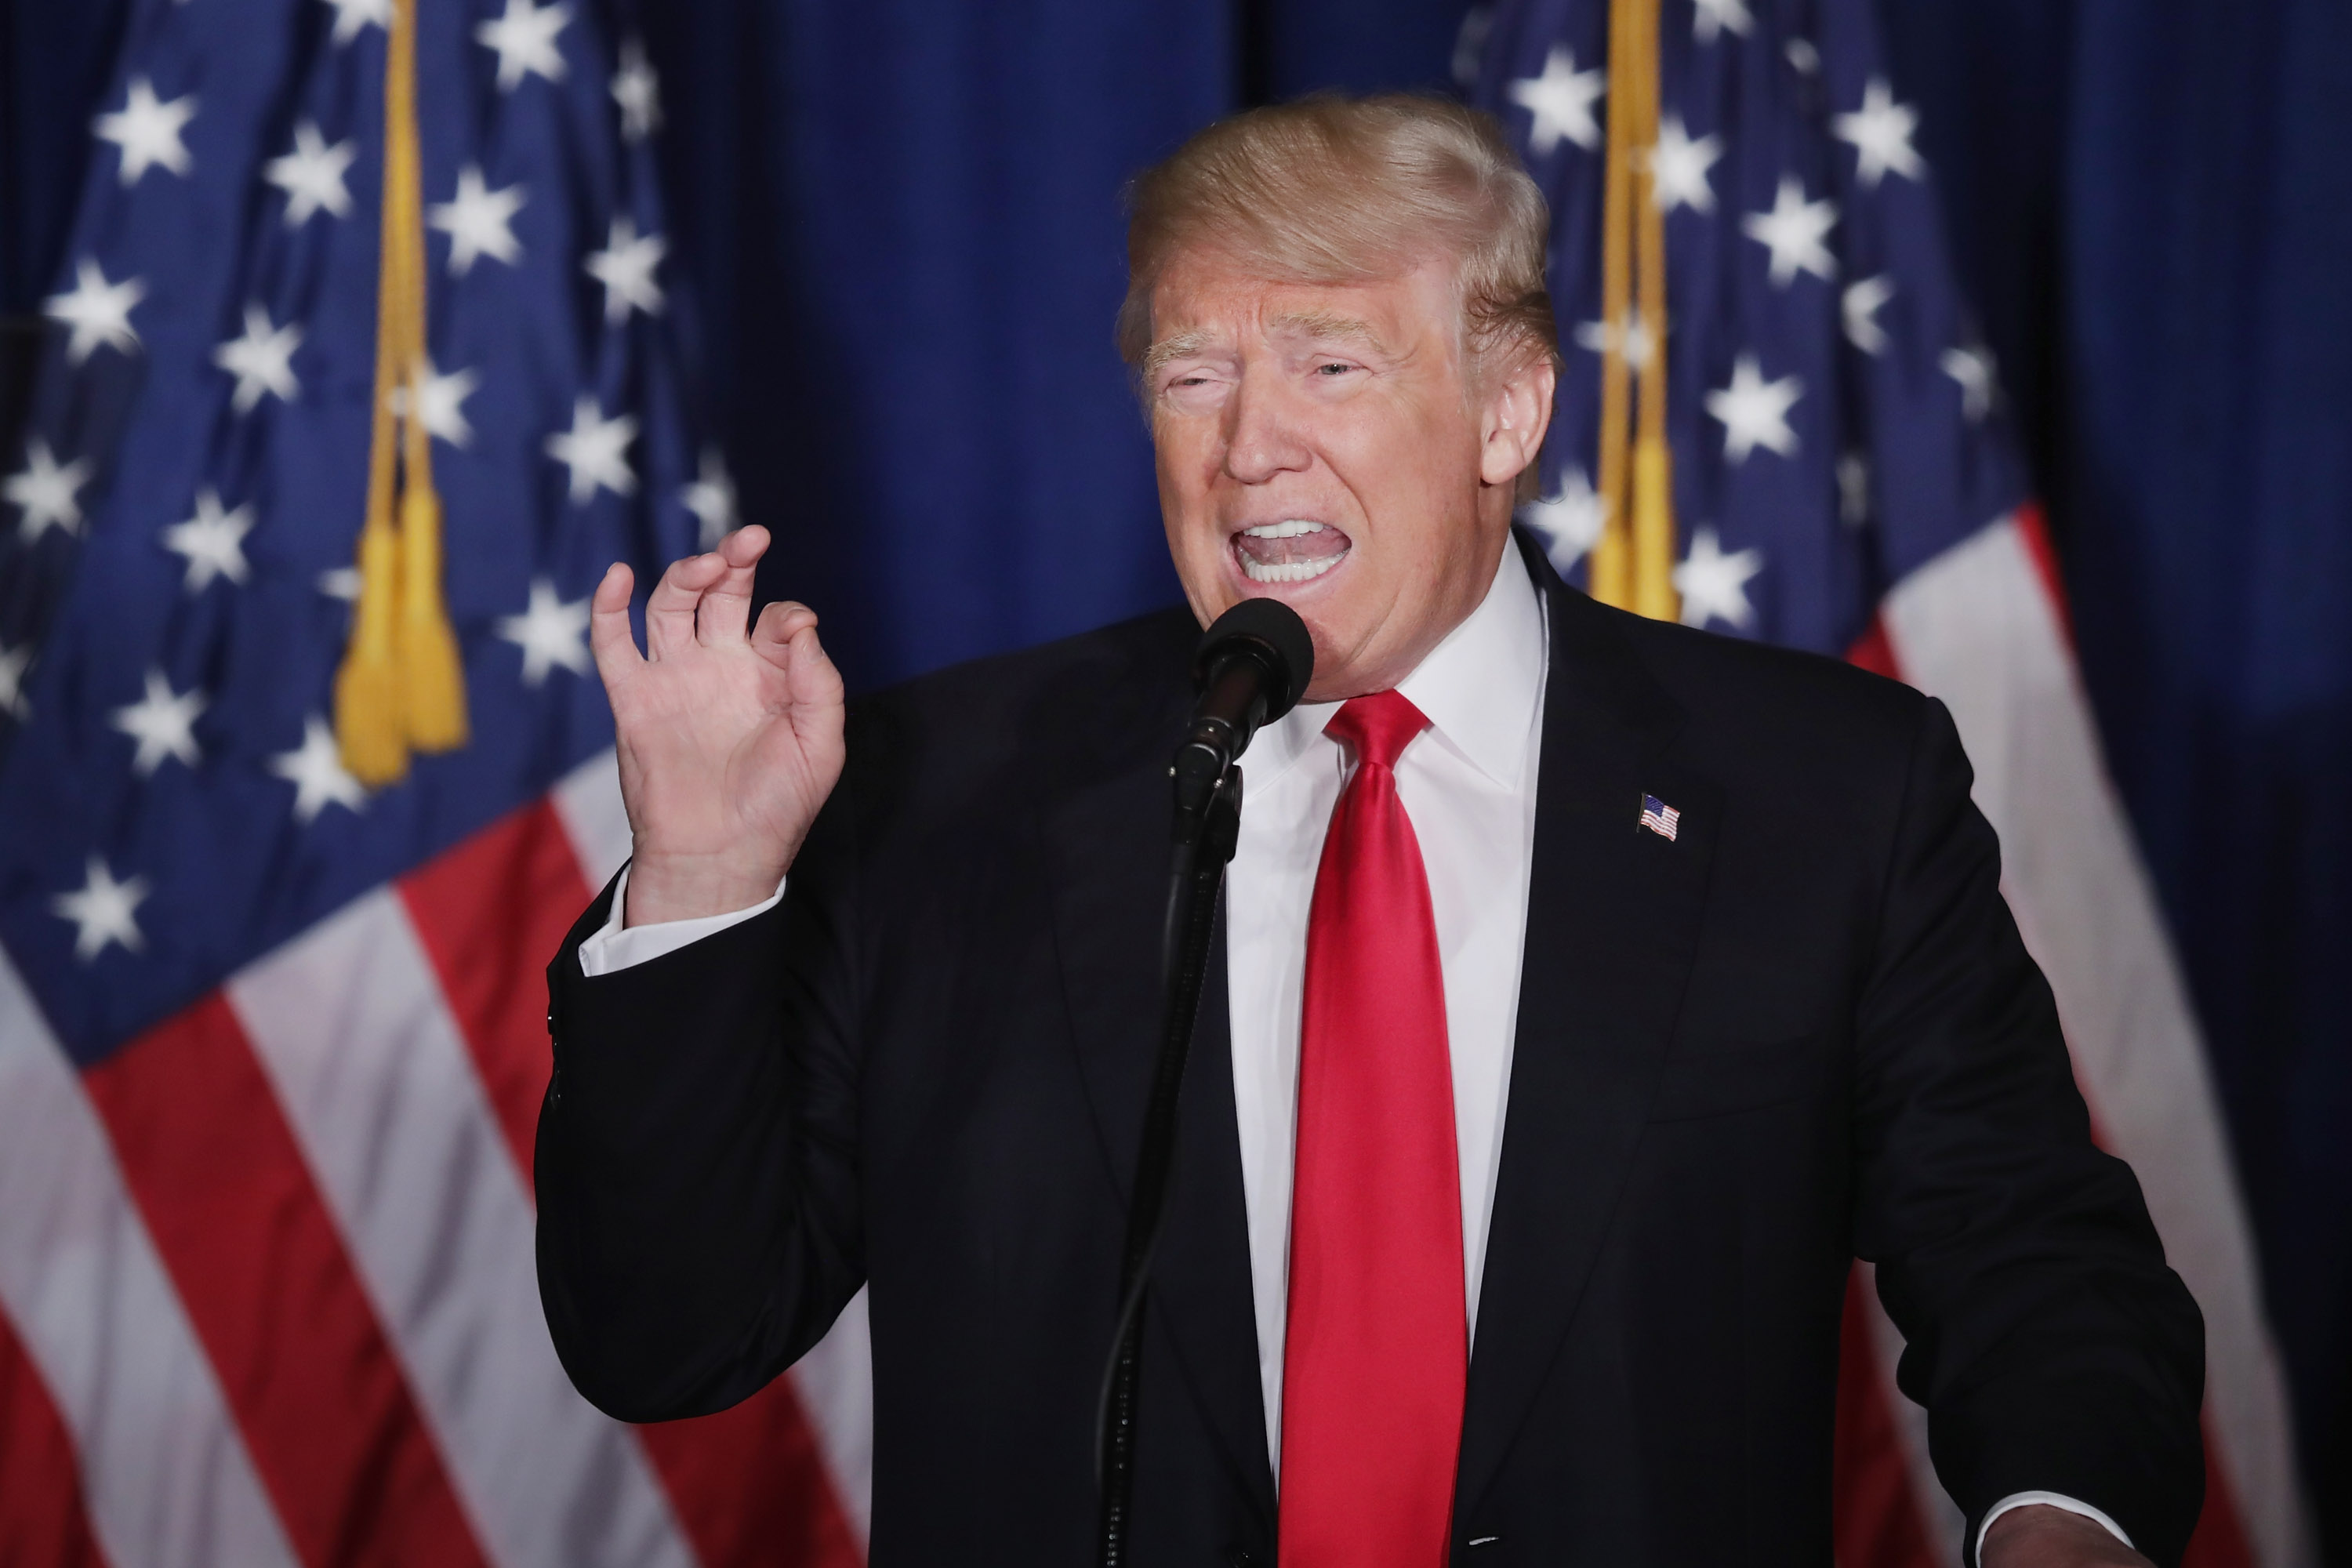 GOP Republican Presidential Candidate Donald Trump Gives Foreign Policy Address In DC